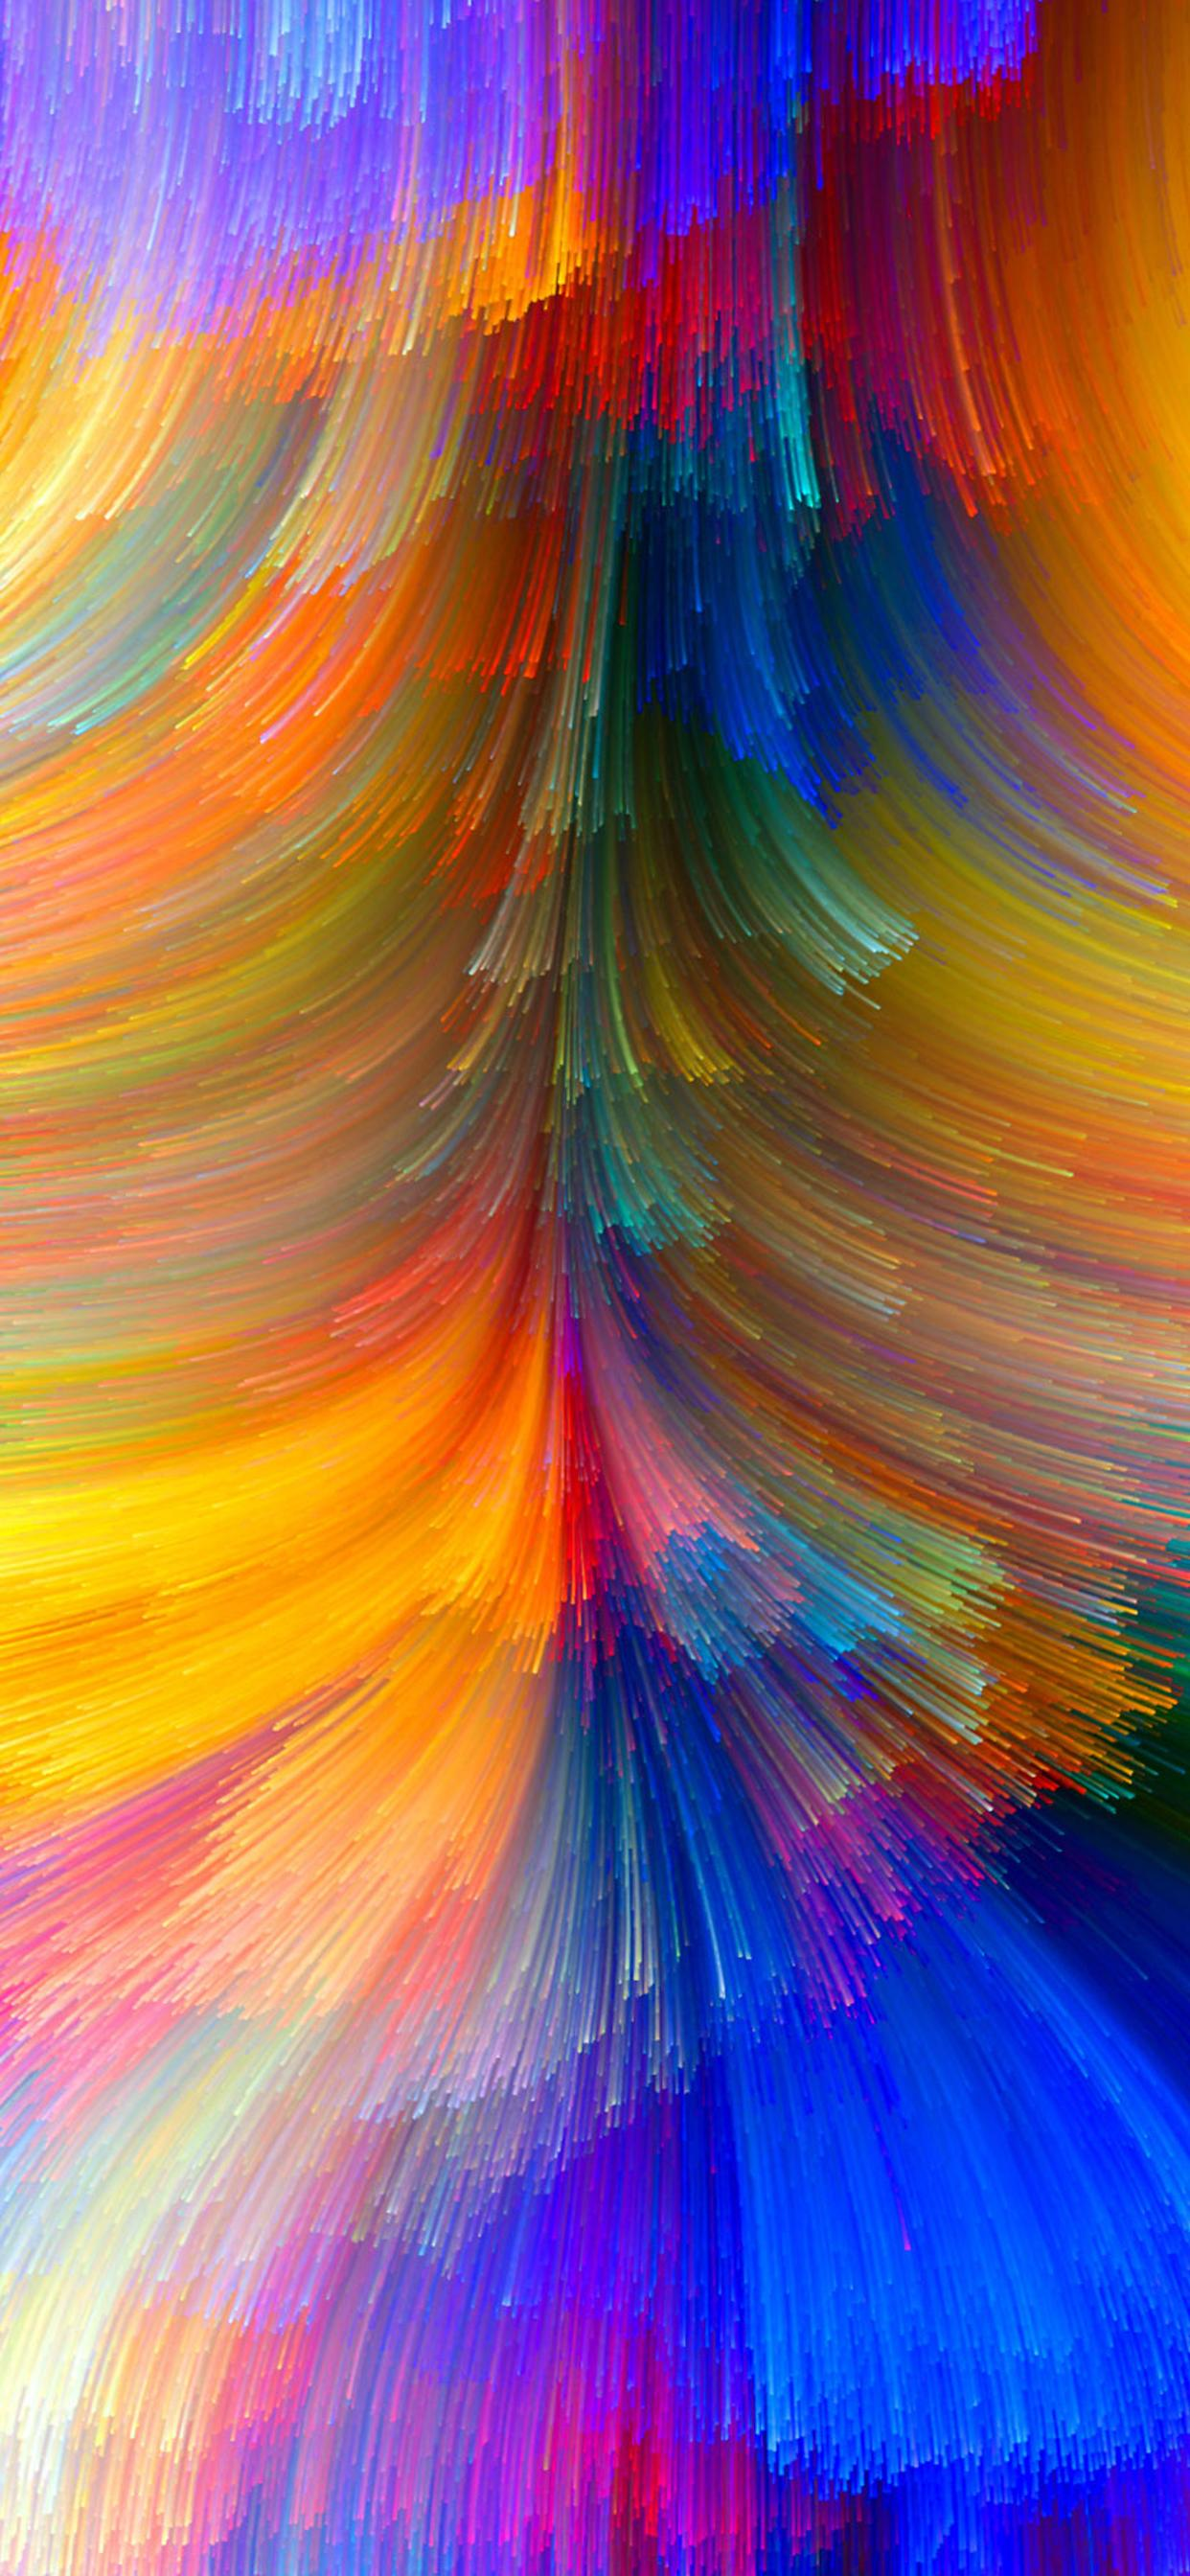 Abstract Colorful Wallpaper Hd Bright Colors